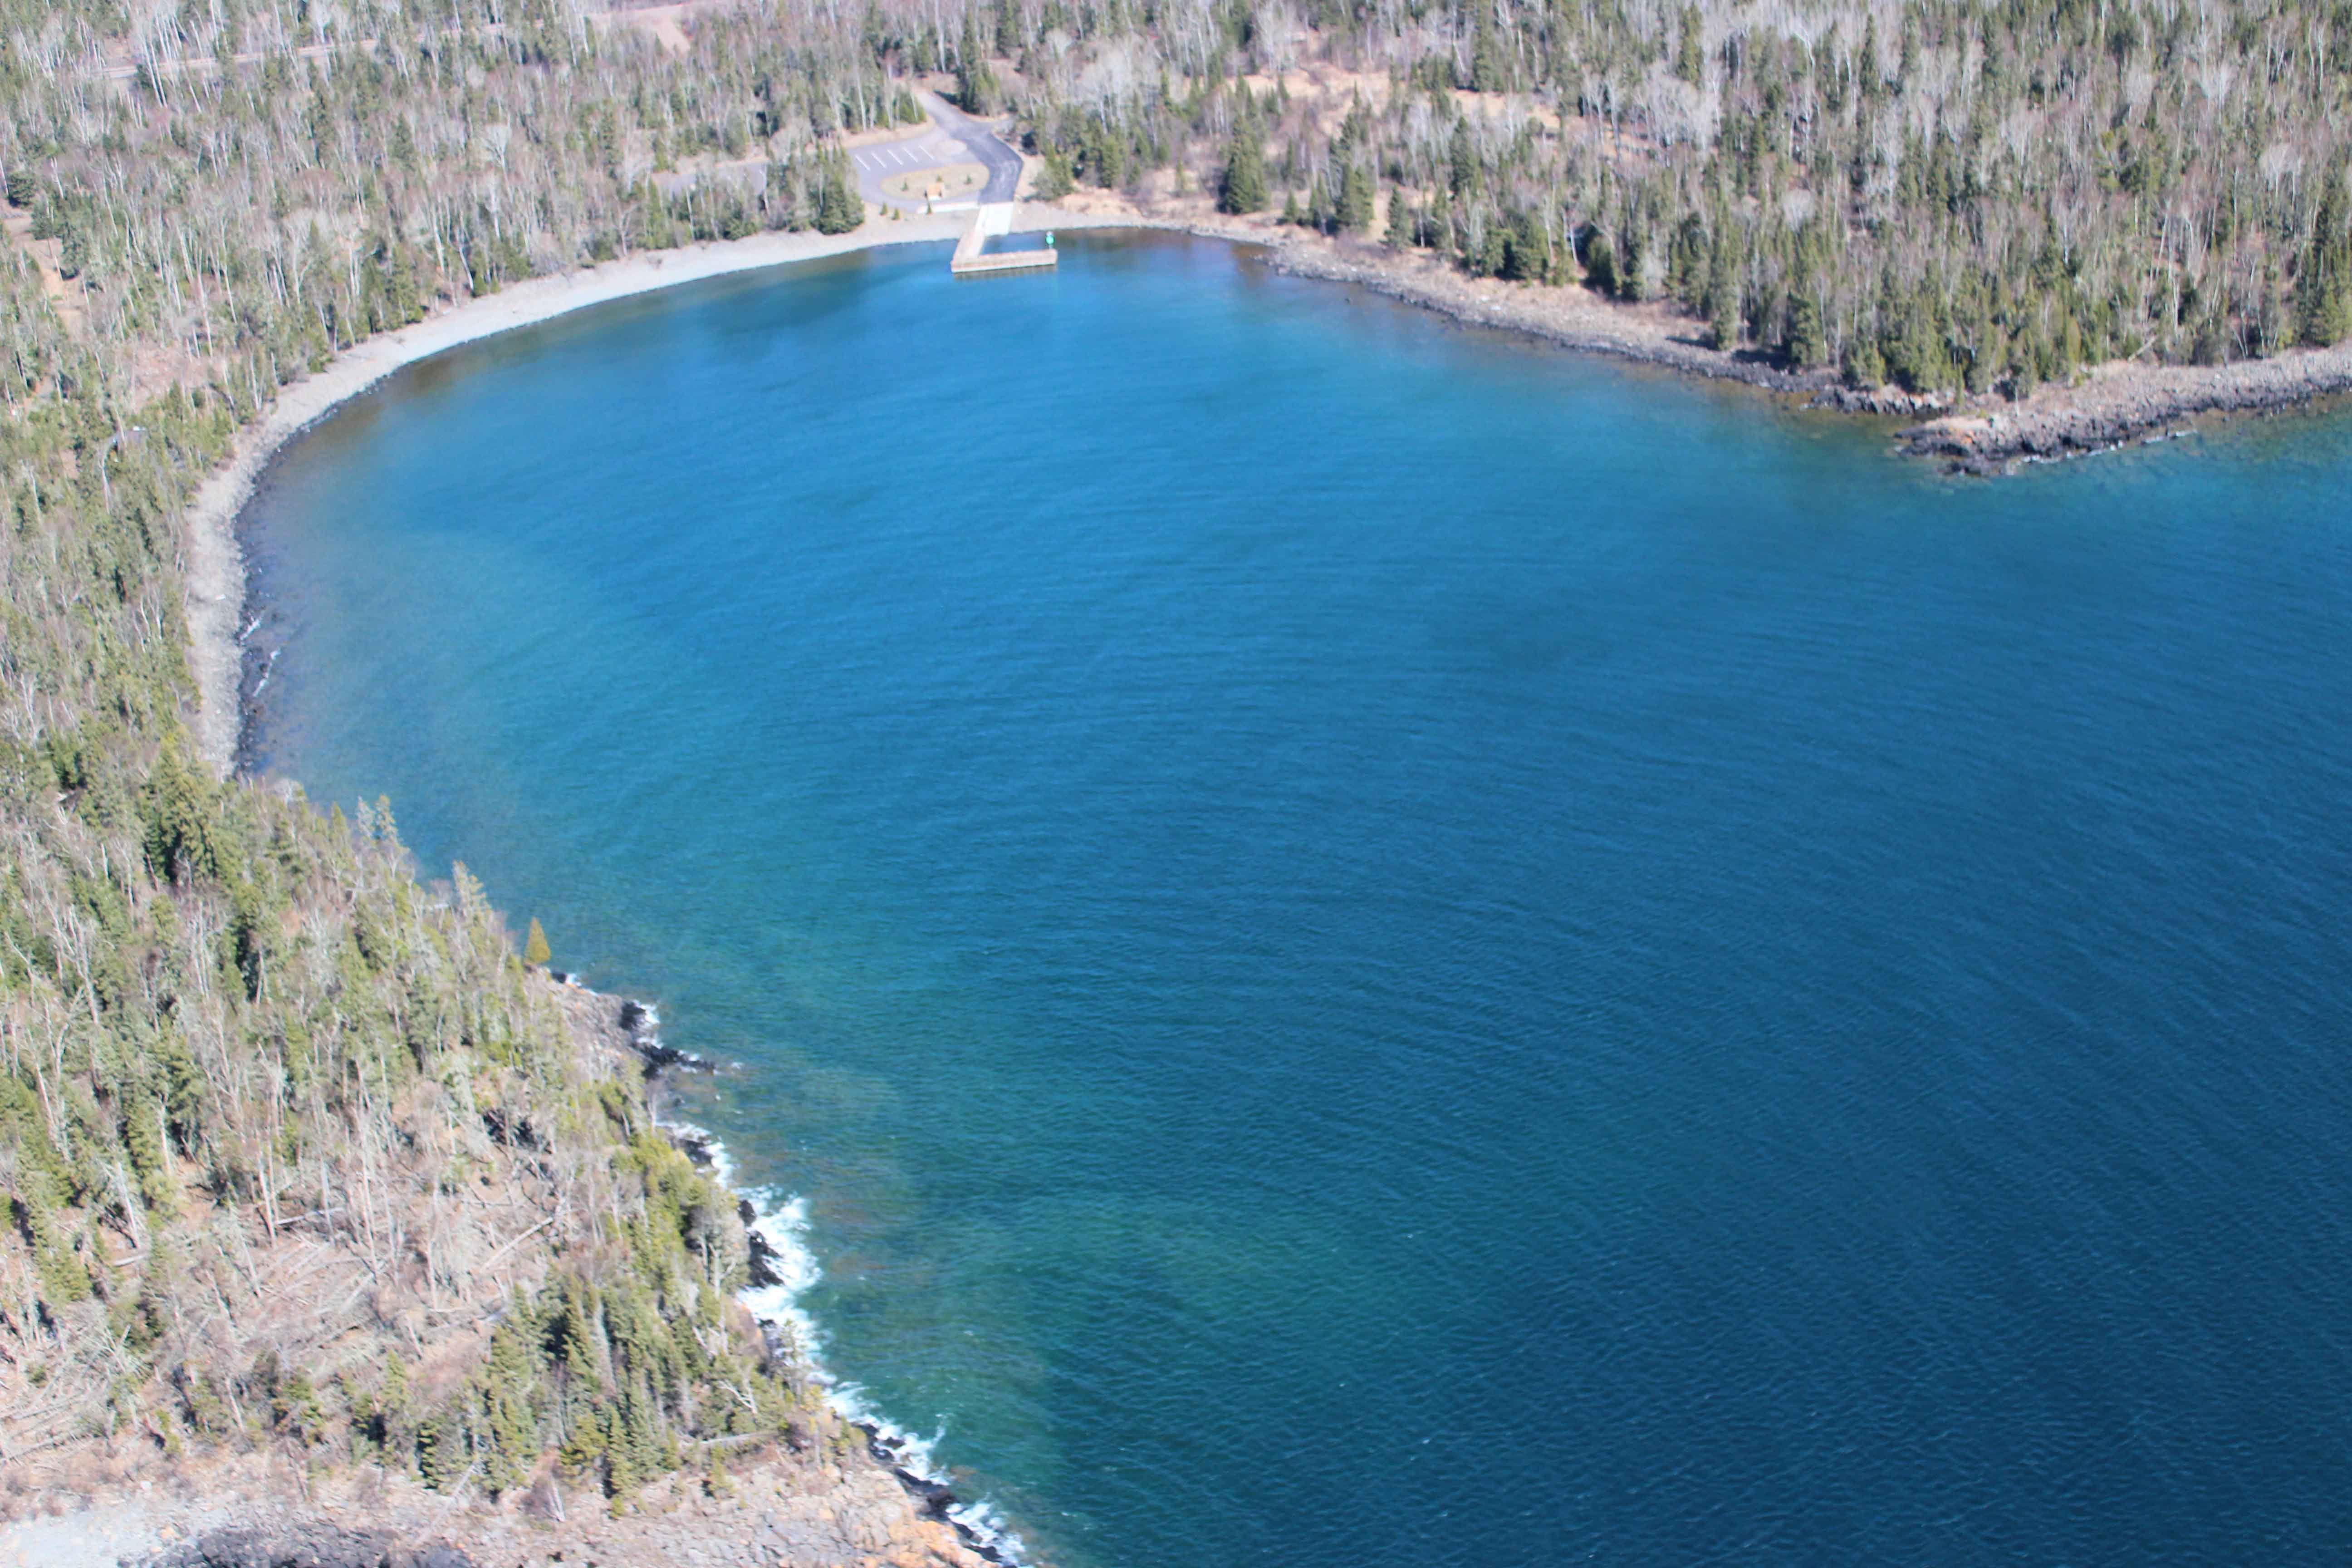 A view by air of Horseshoe Bay public water access on the shore of Lake Superior.